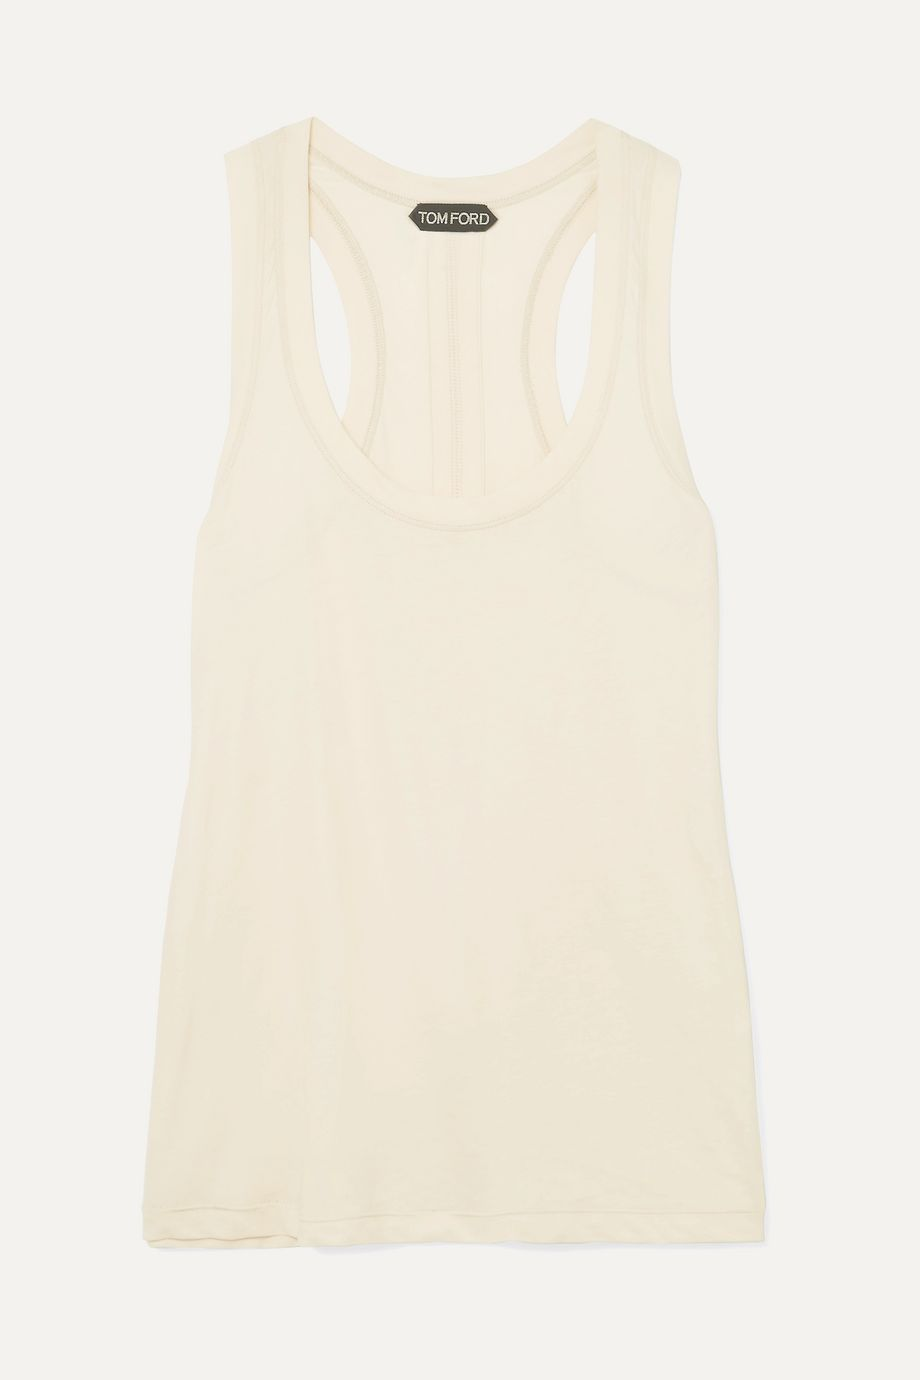 TOM FORD Cotton-jersey tank